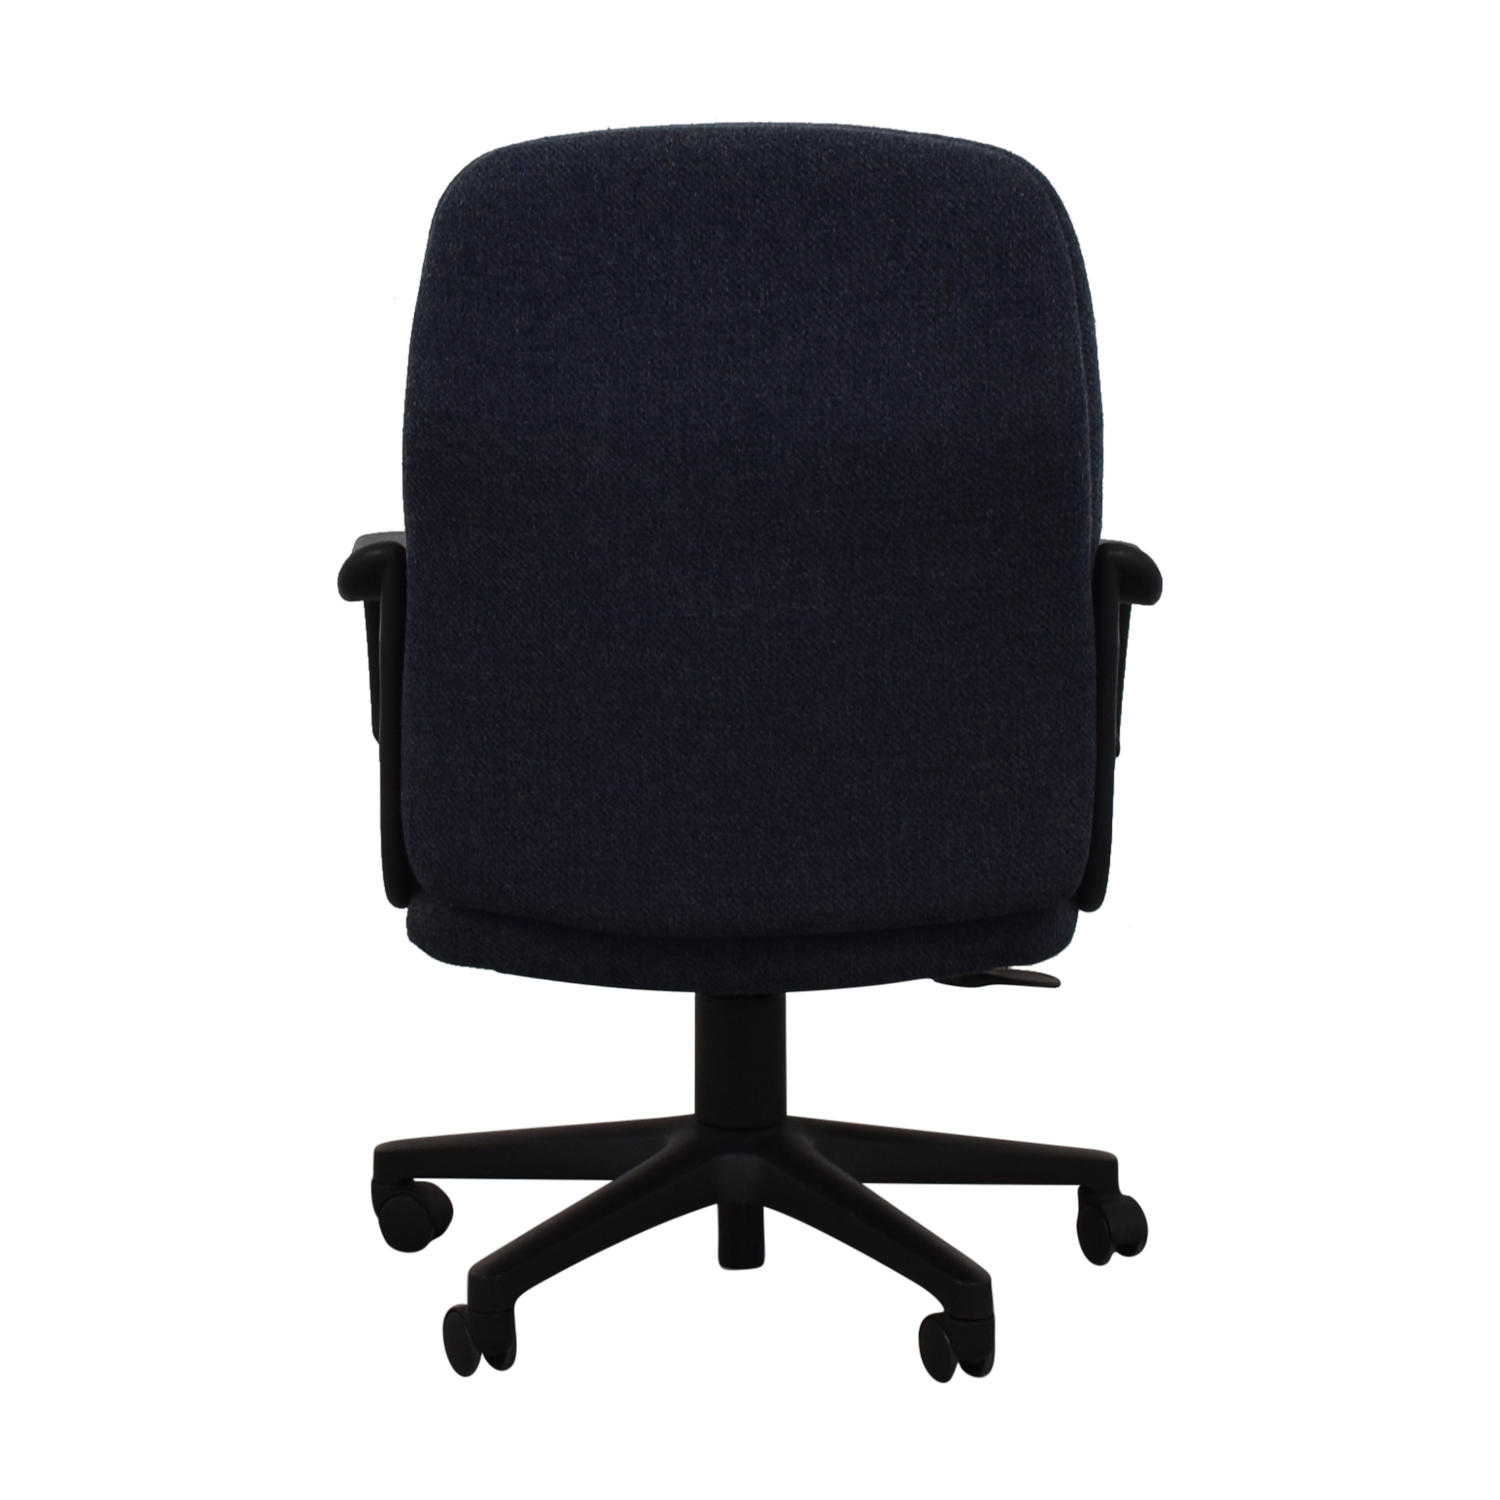 buy HON HON Grey High-Back Executive Swivel Office Chair online